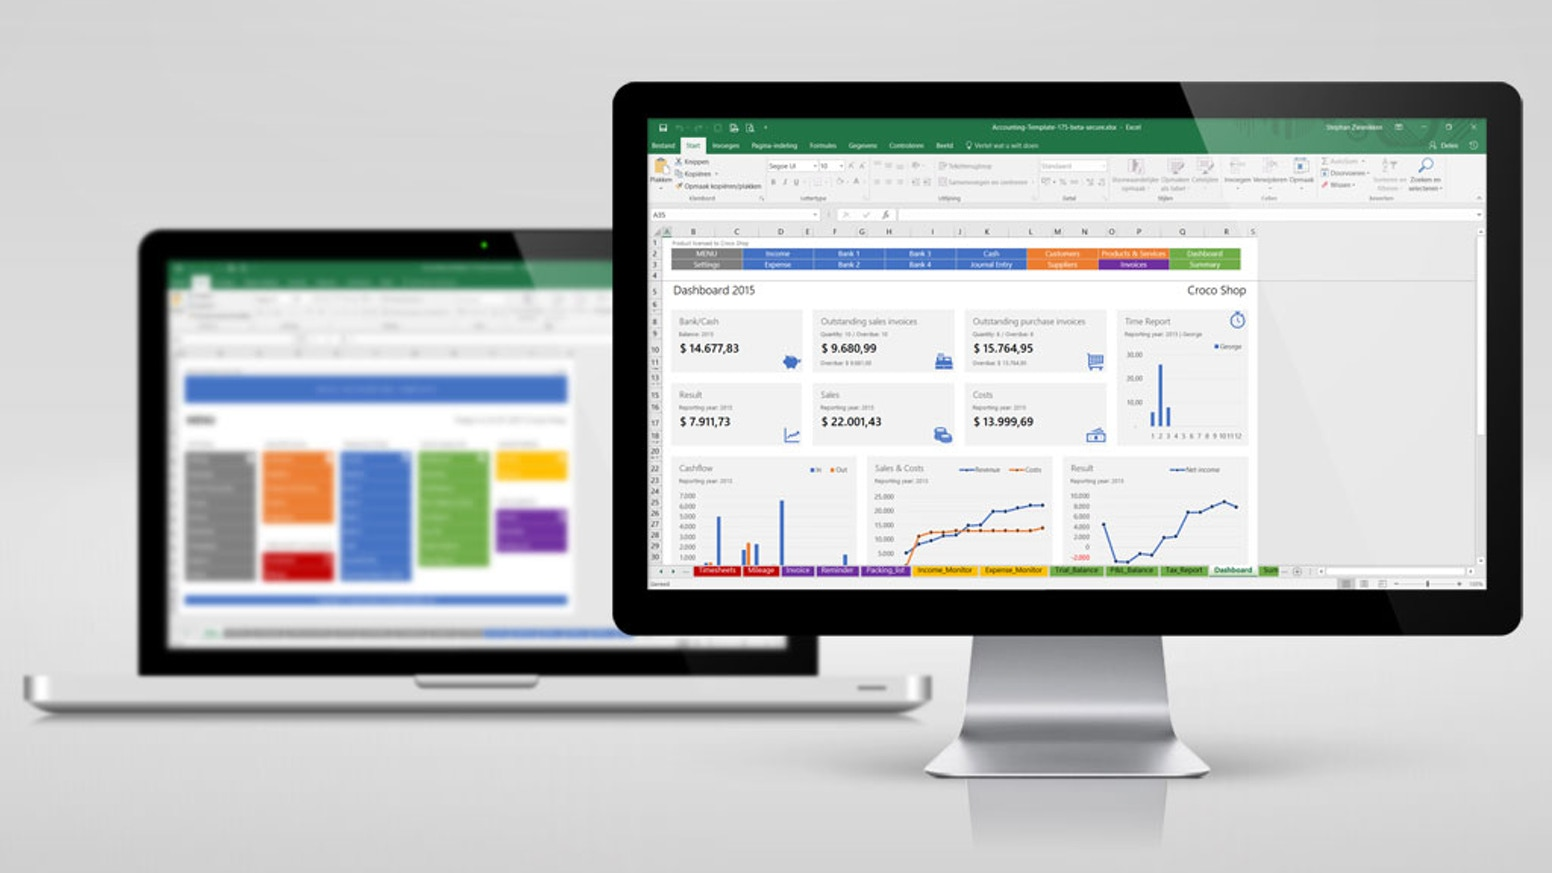 Excel accounting template by stephan zwanikken kickstarter the all in one accounting solution in excel for small business owners accmission Images